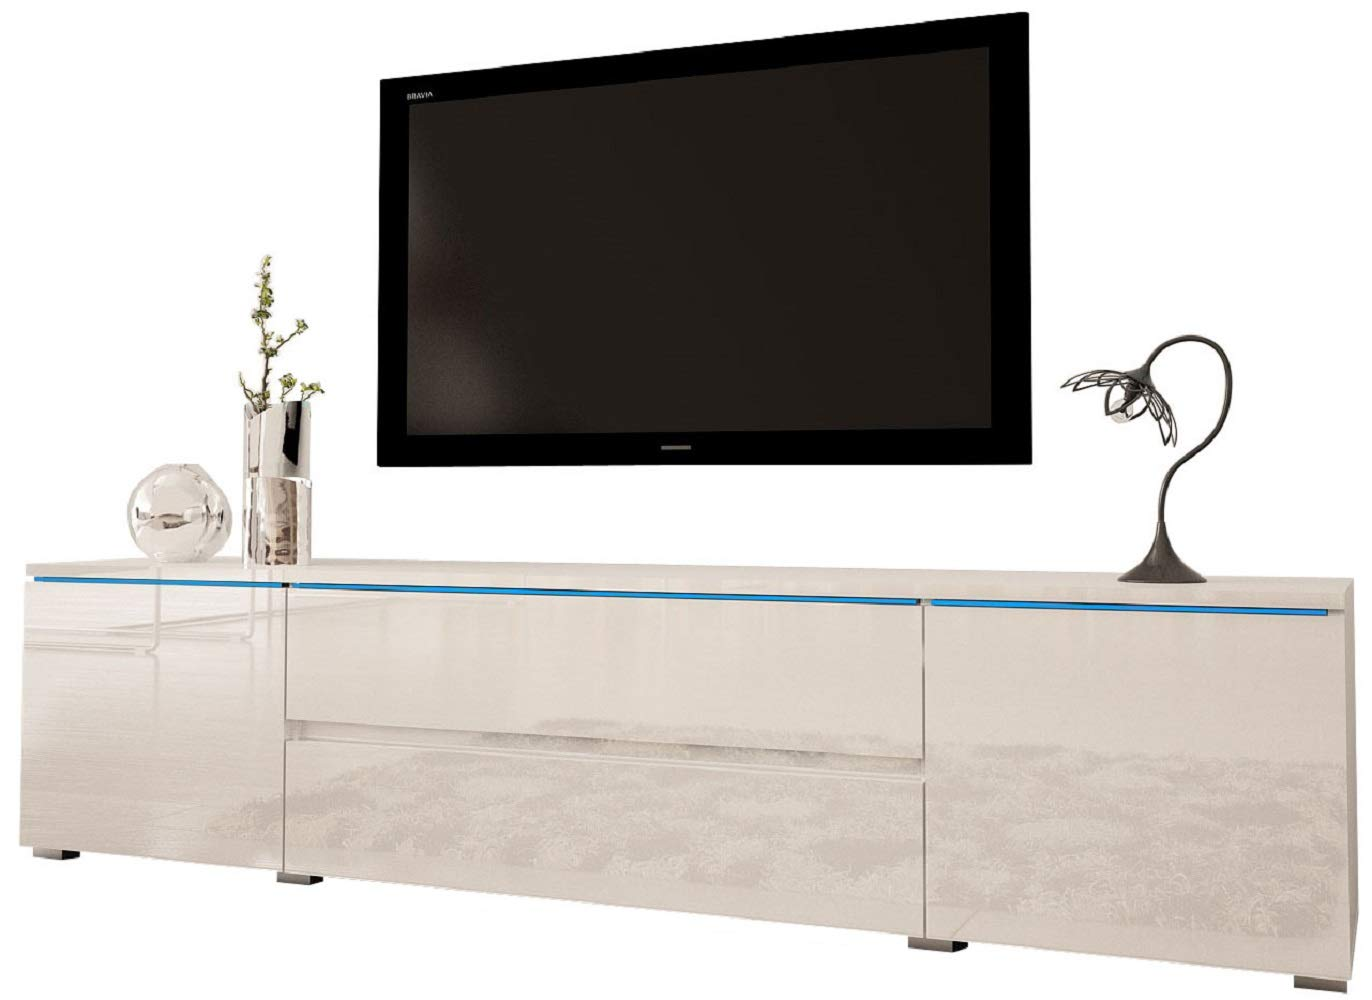 Meble Furniture & Rugs Euphoria 79'' Modern TV Stand, White by Meble Furniture & Rugs